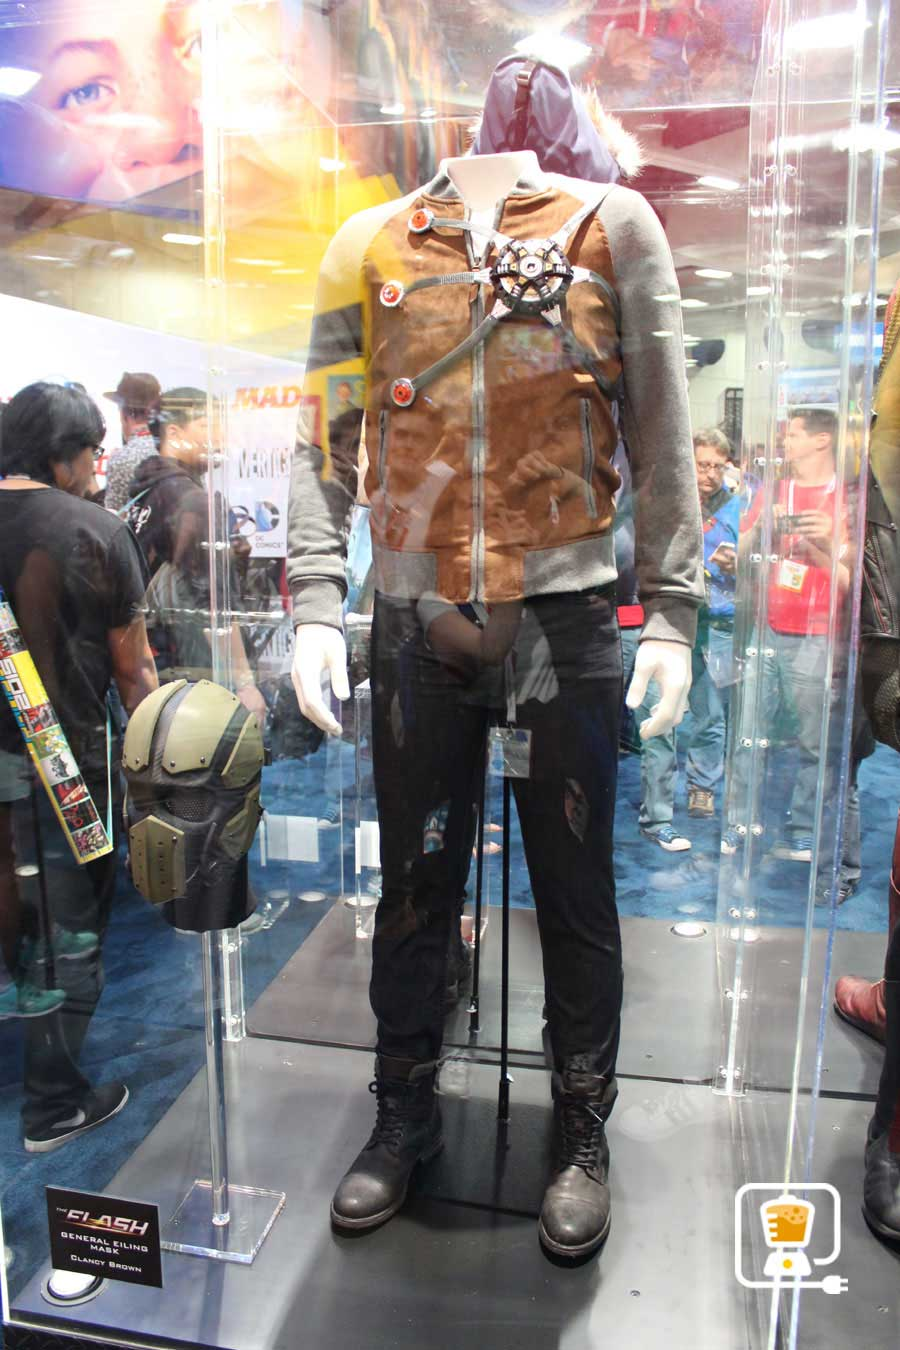 See Flash And Arrow's Amazing Costumes And Gadgets On Display At Comic-Con #32892